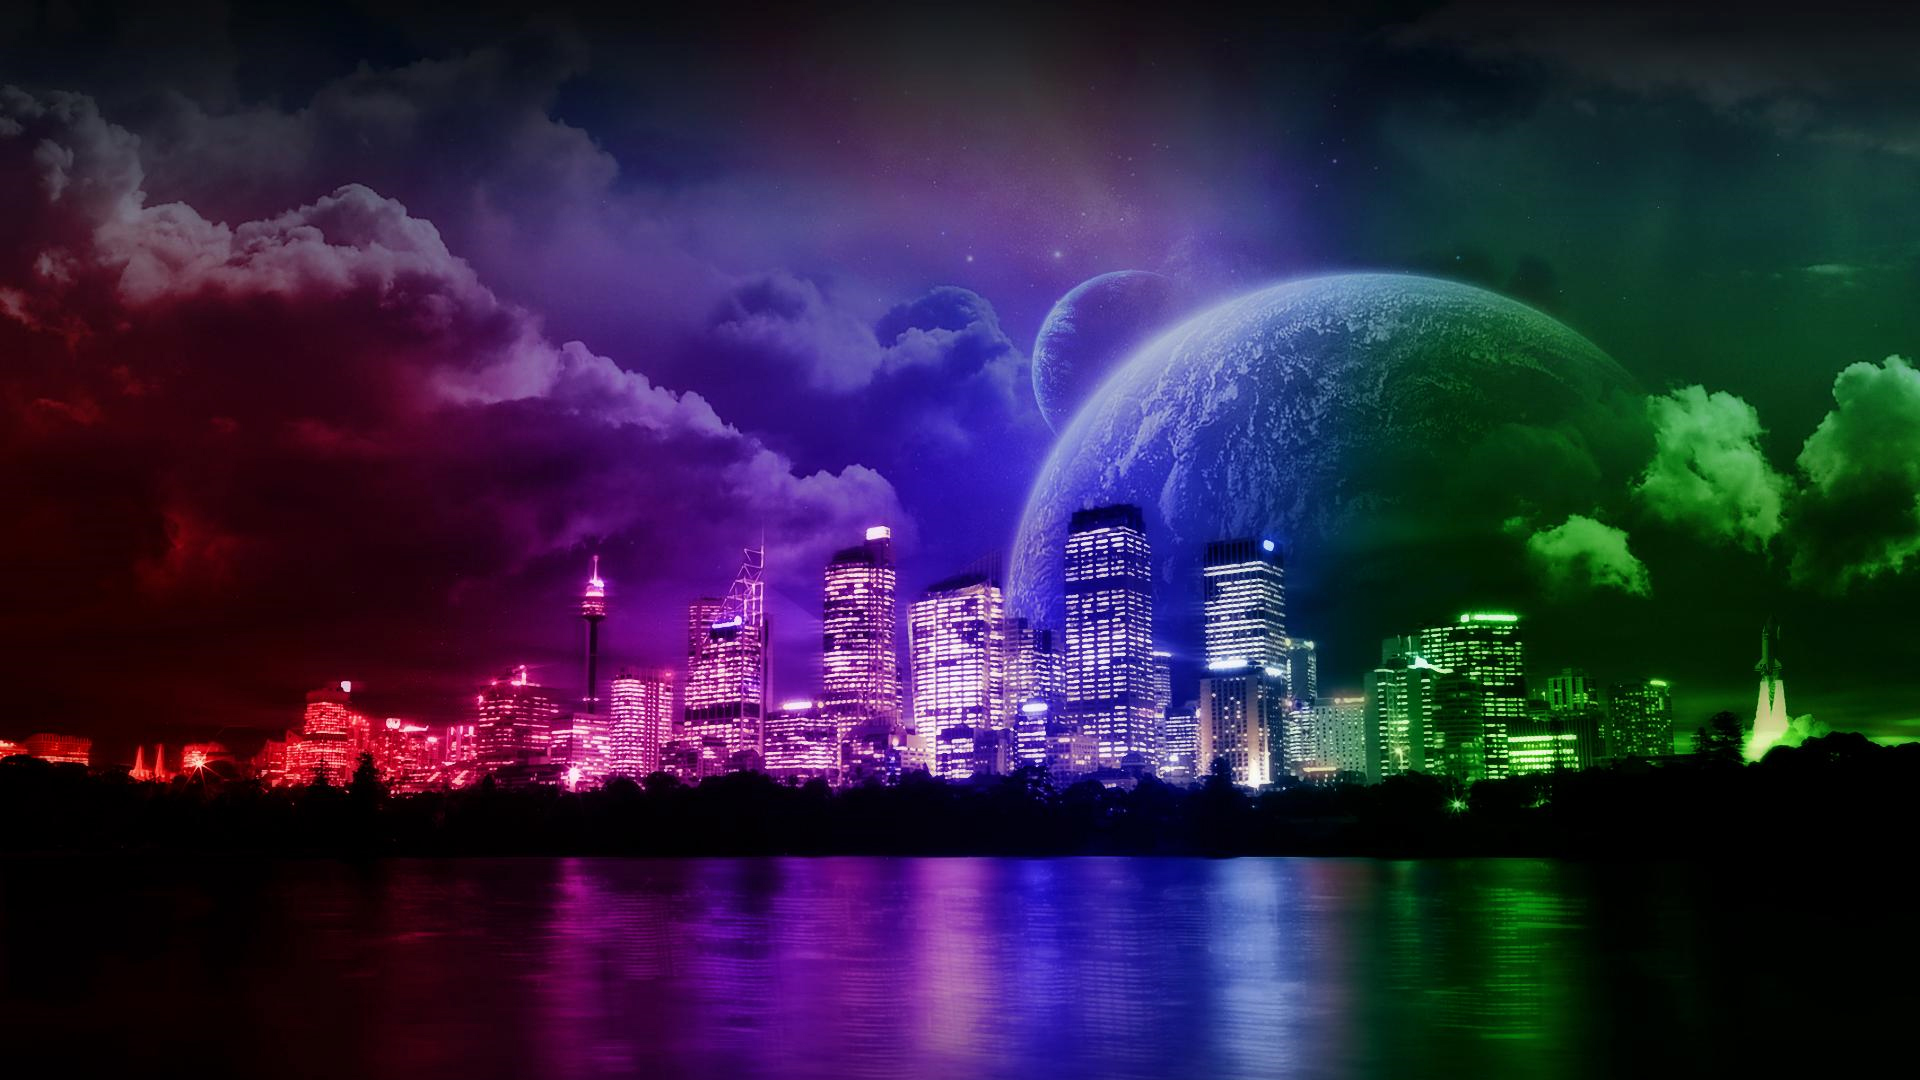 D-city-night-fantasy-wallpaper-wp400889-1